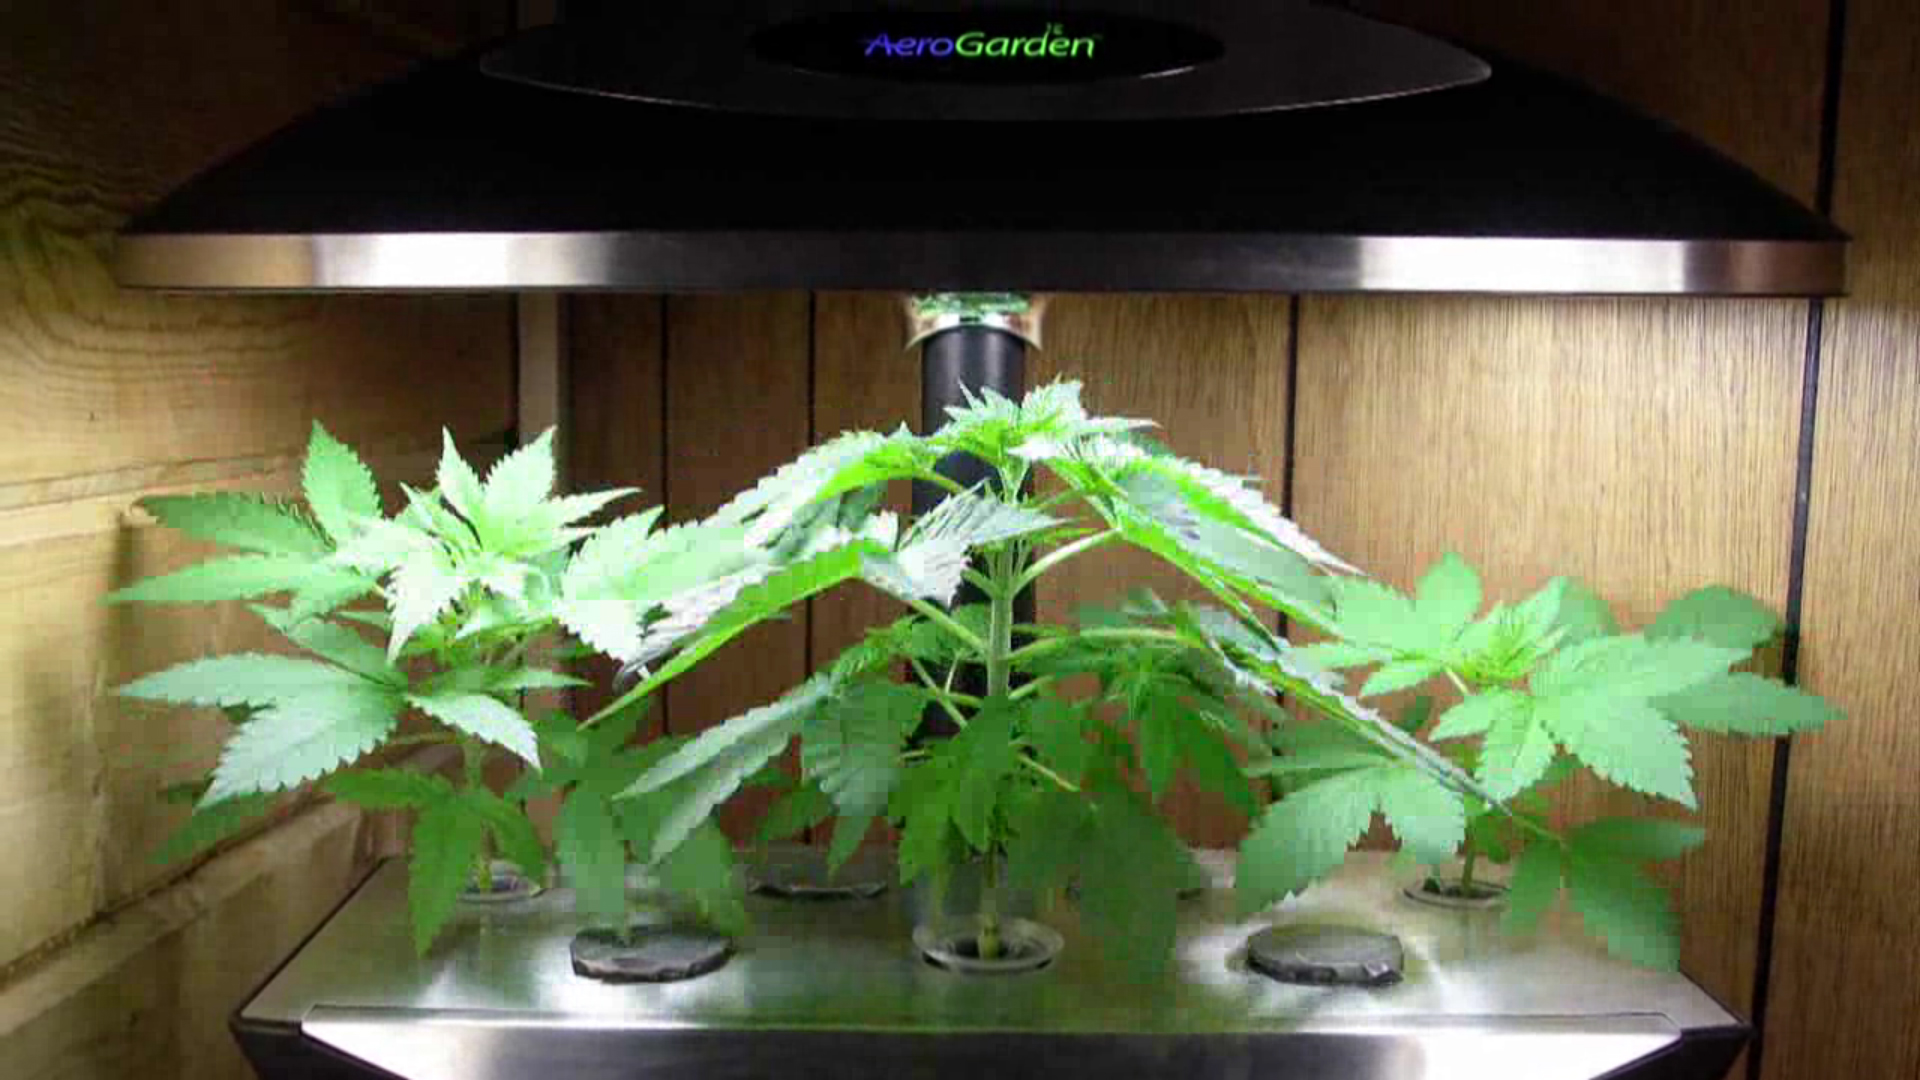 Growing Weed With AeroGarden Submited Images